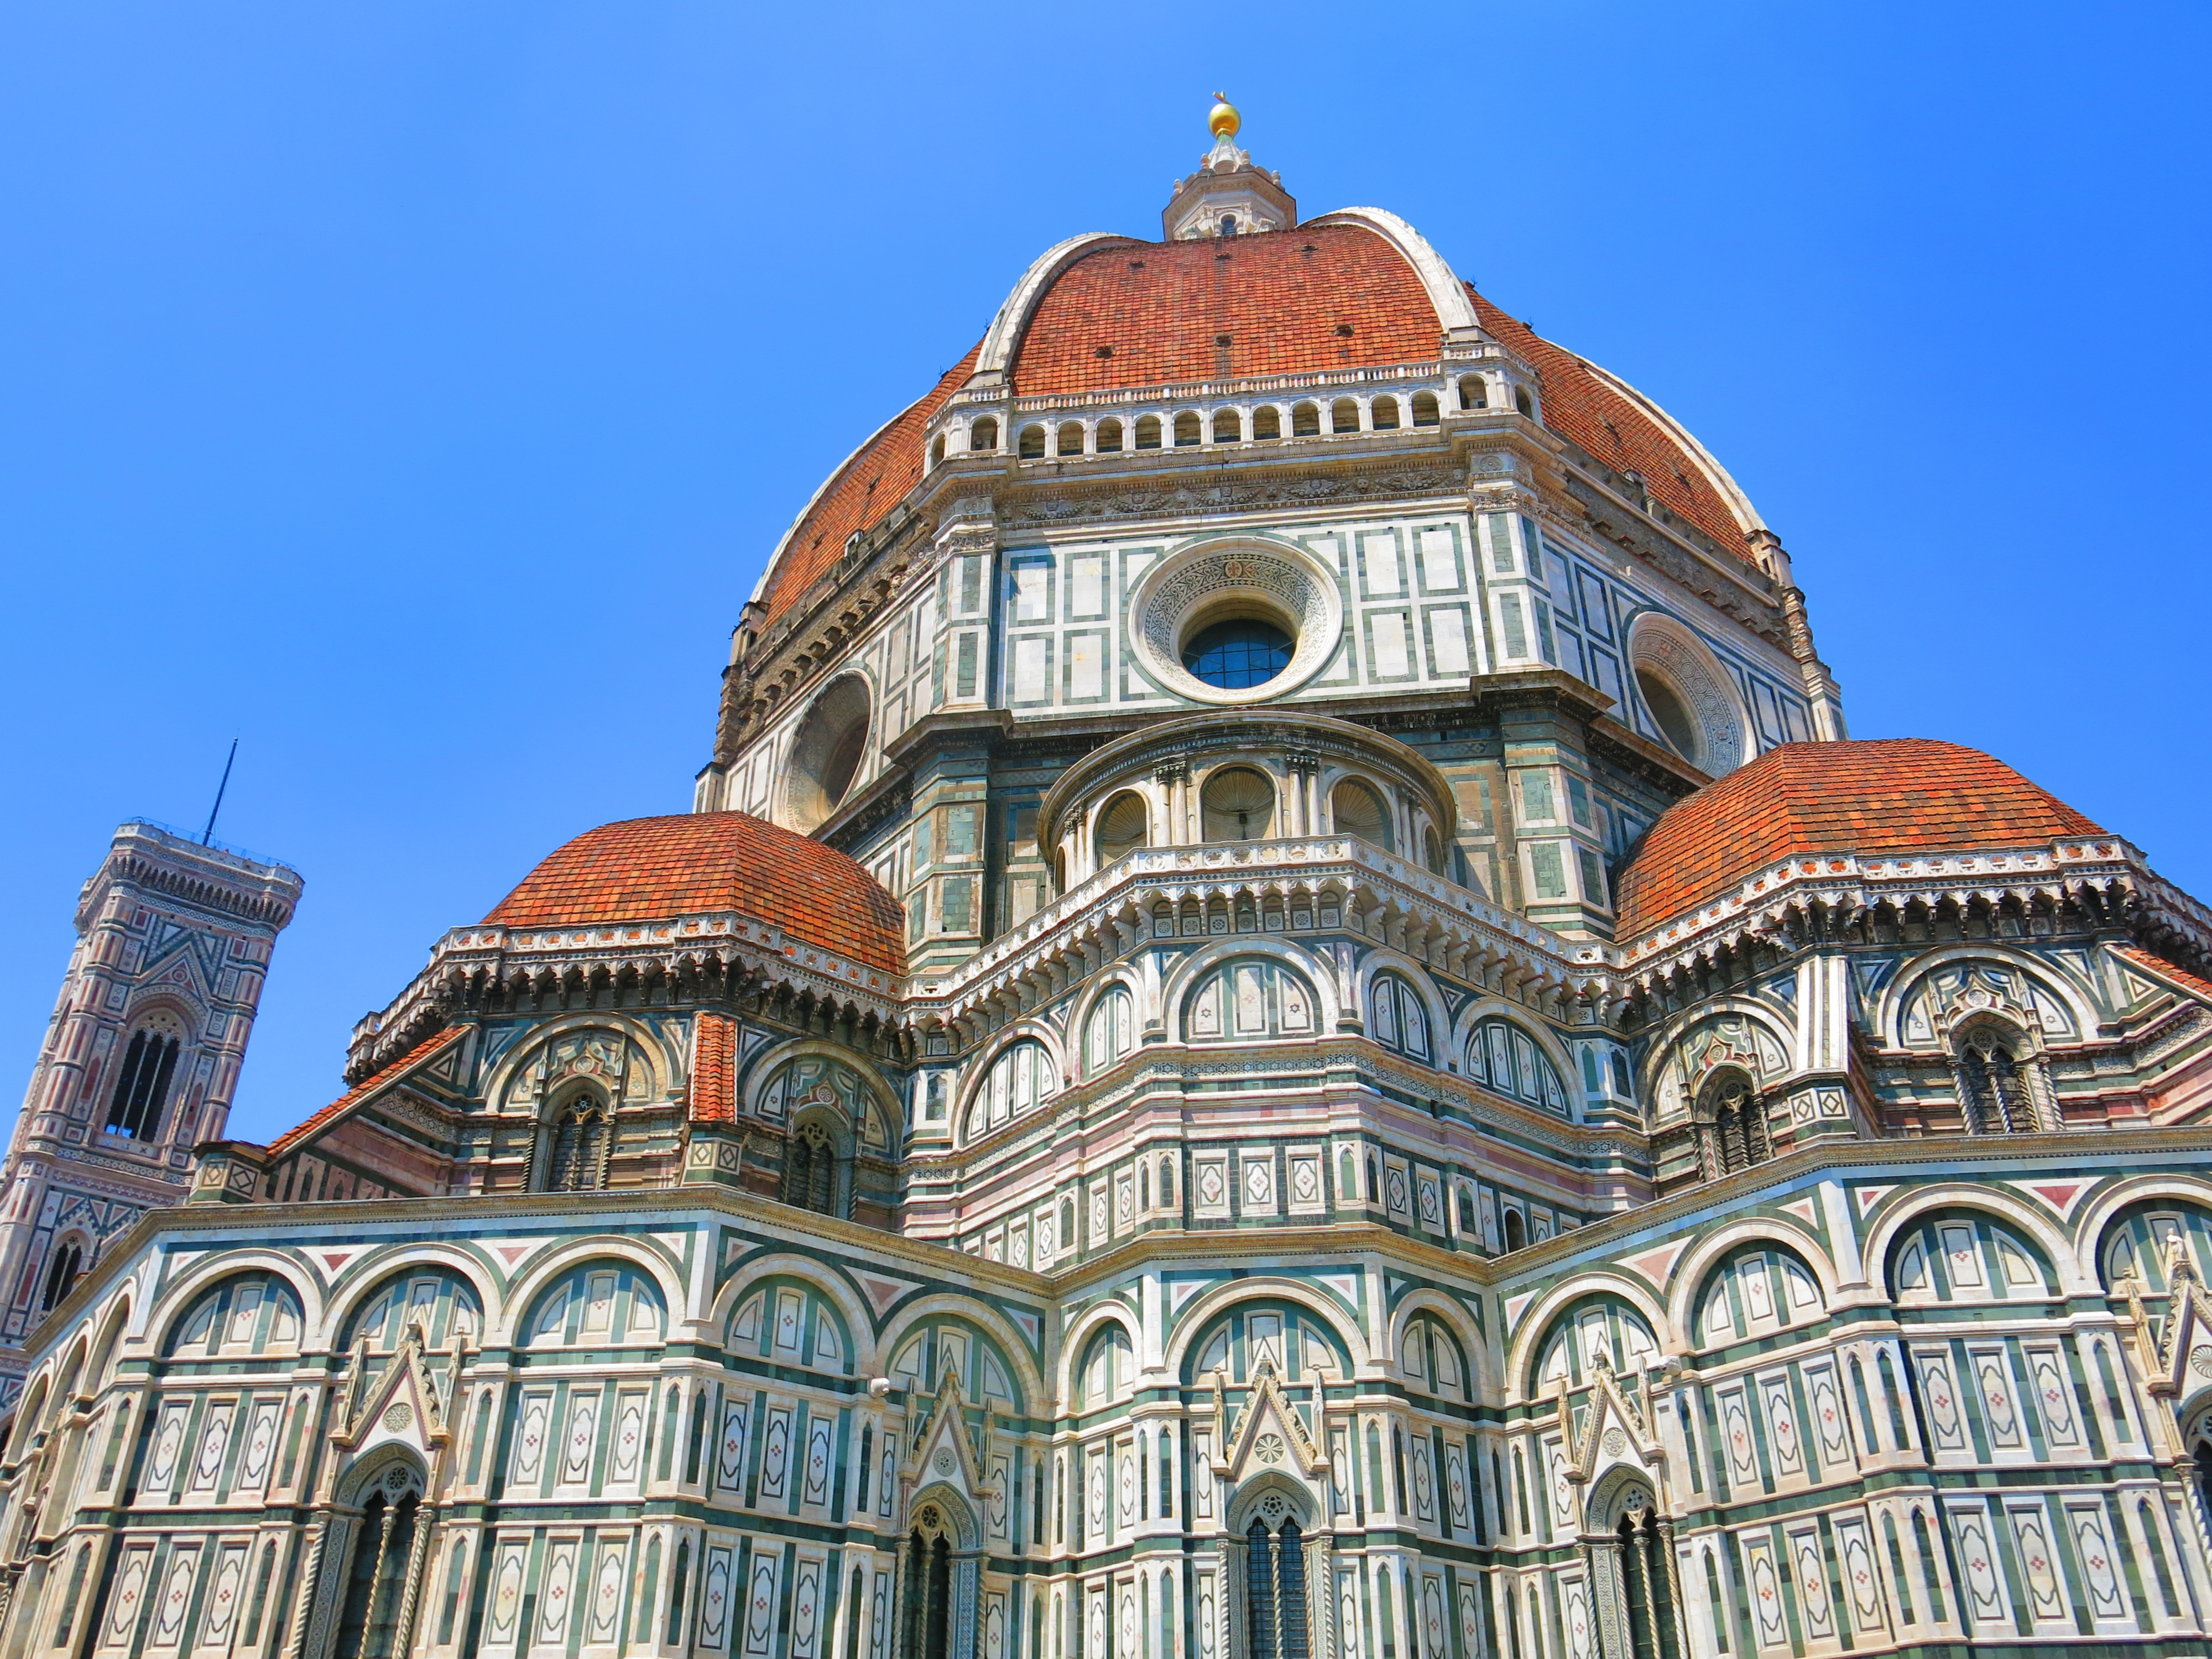 The Florence Doma